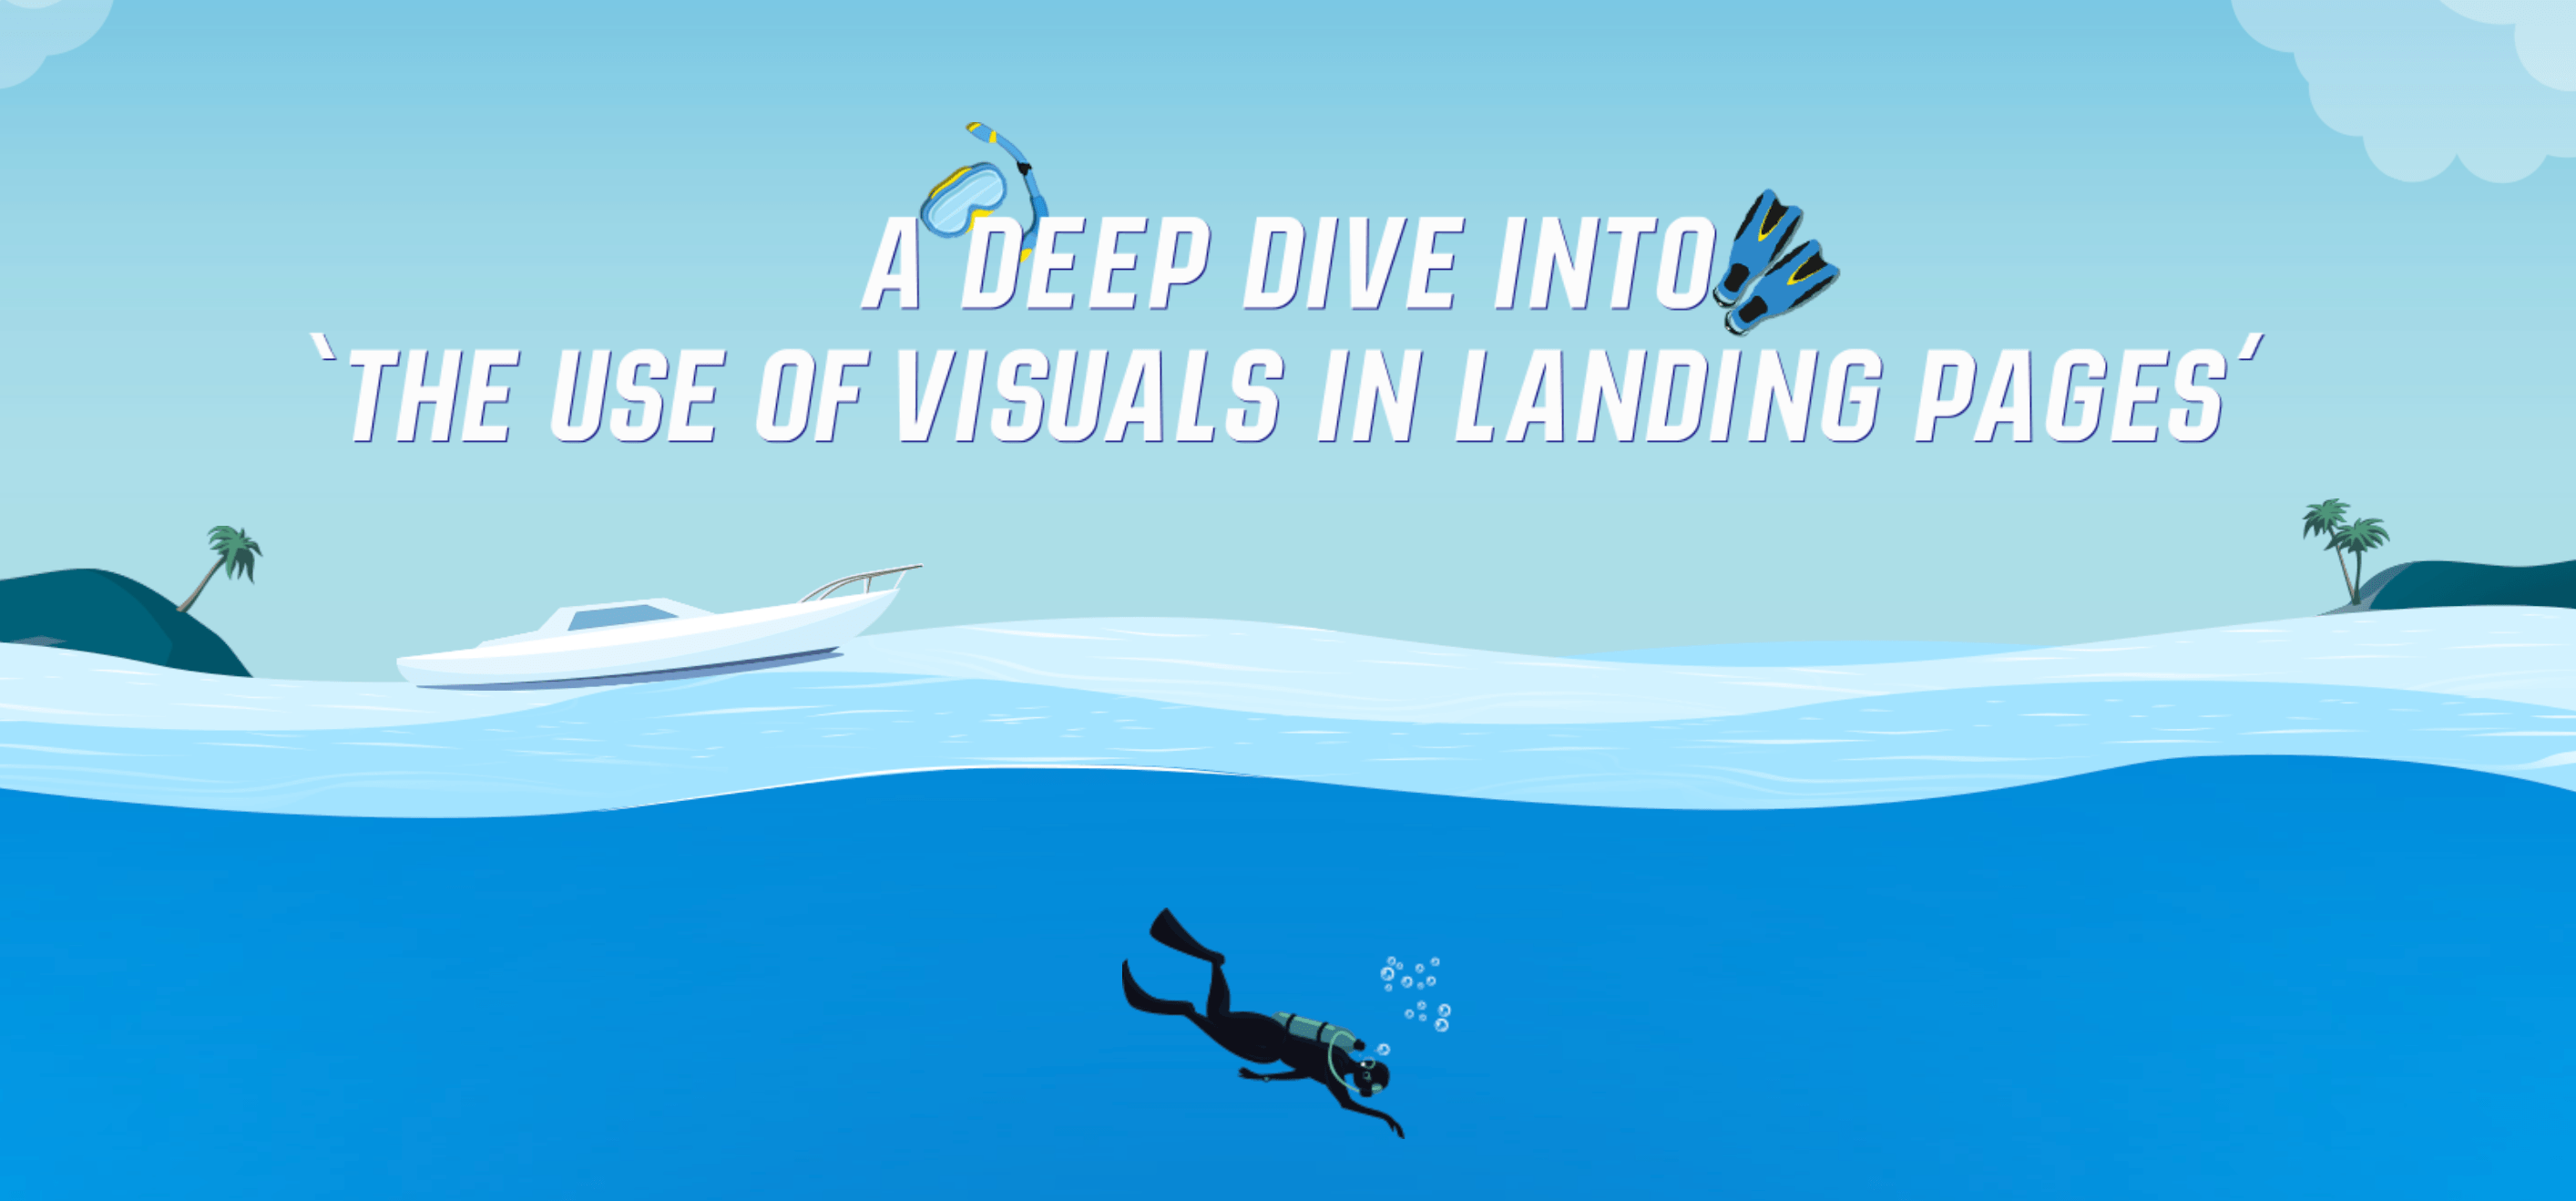 The Key Visual Elements of Landing Page Design